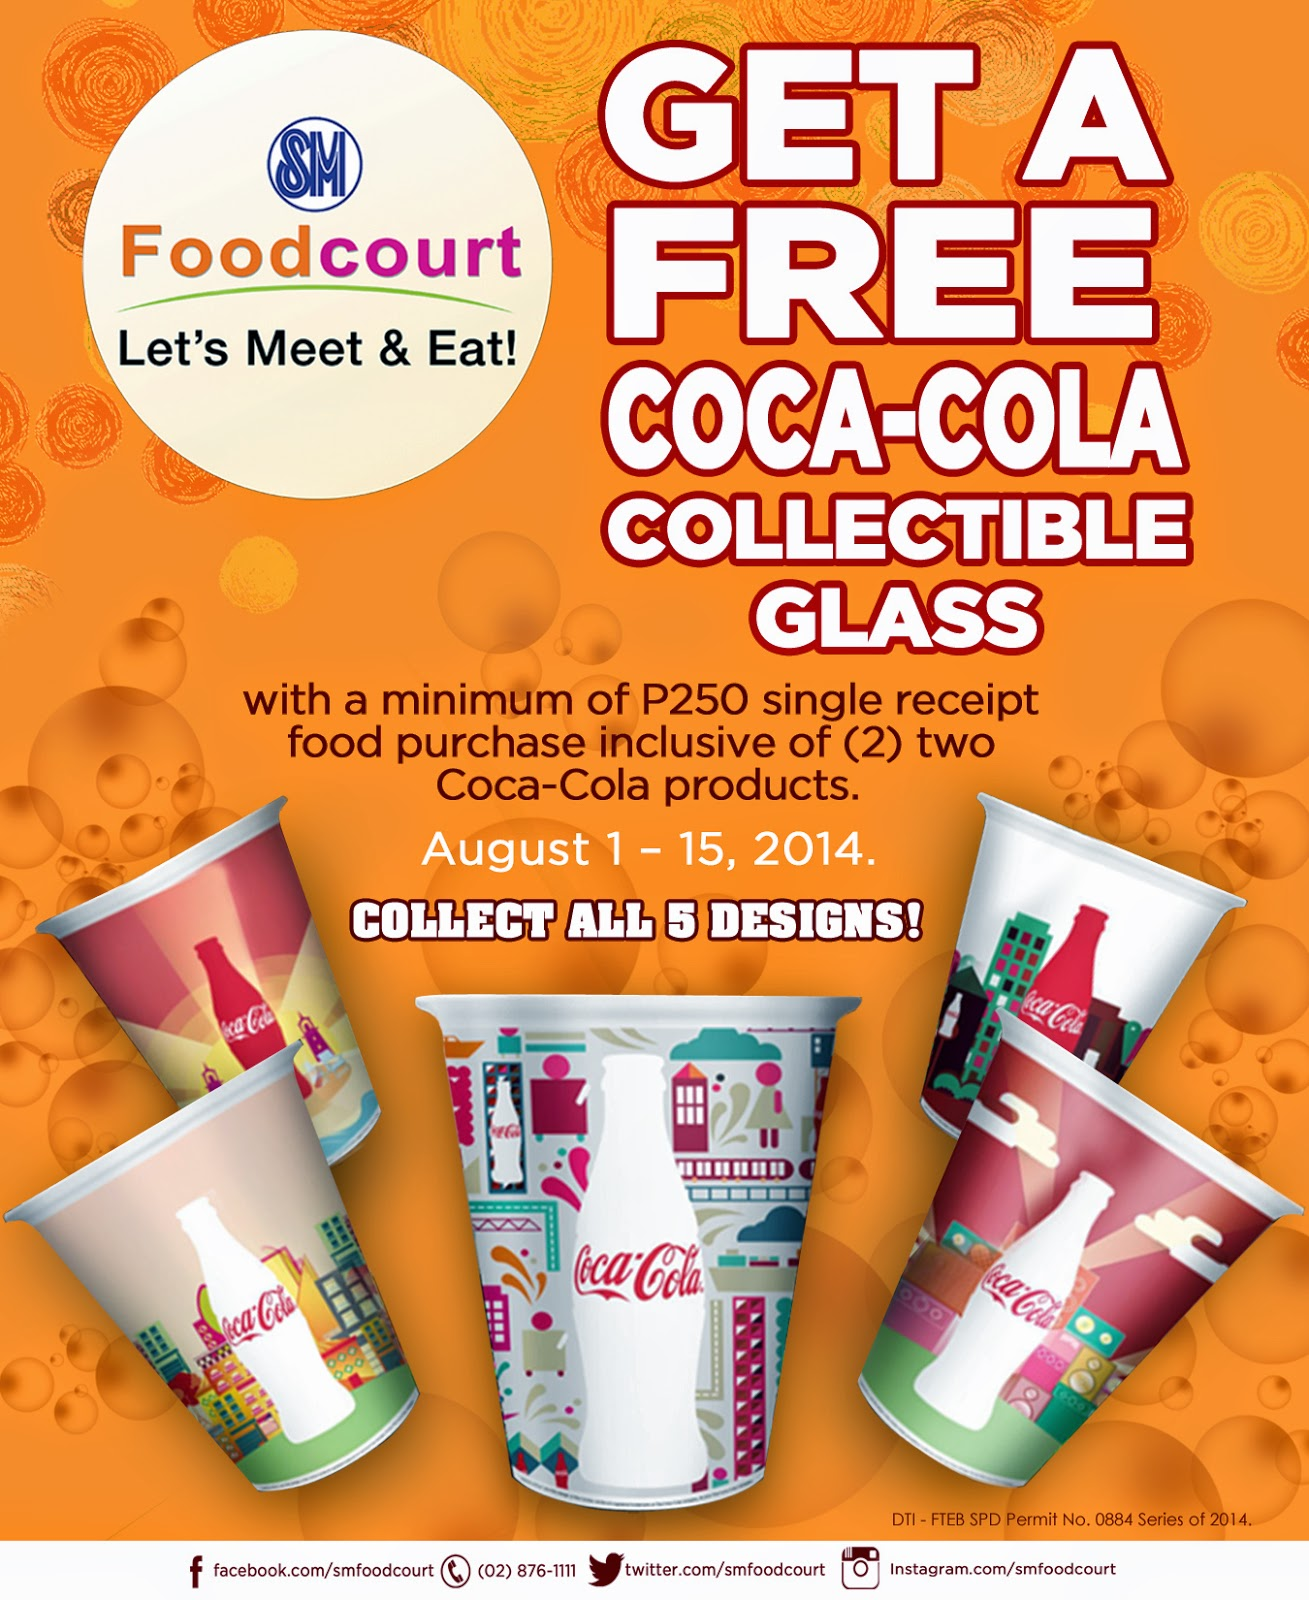 Coca-Cola Collectible Glass Promo